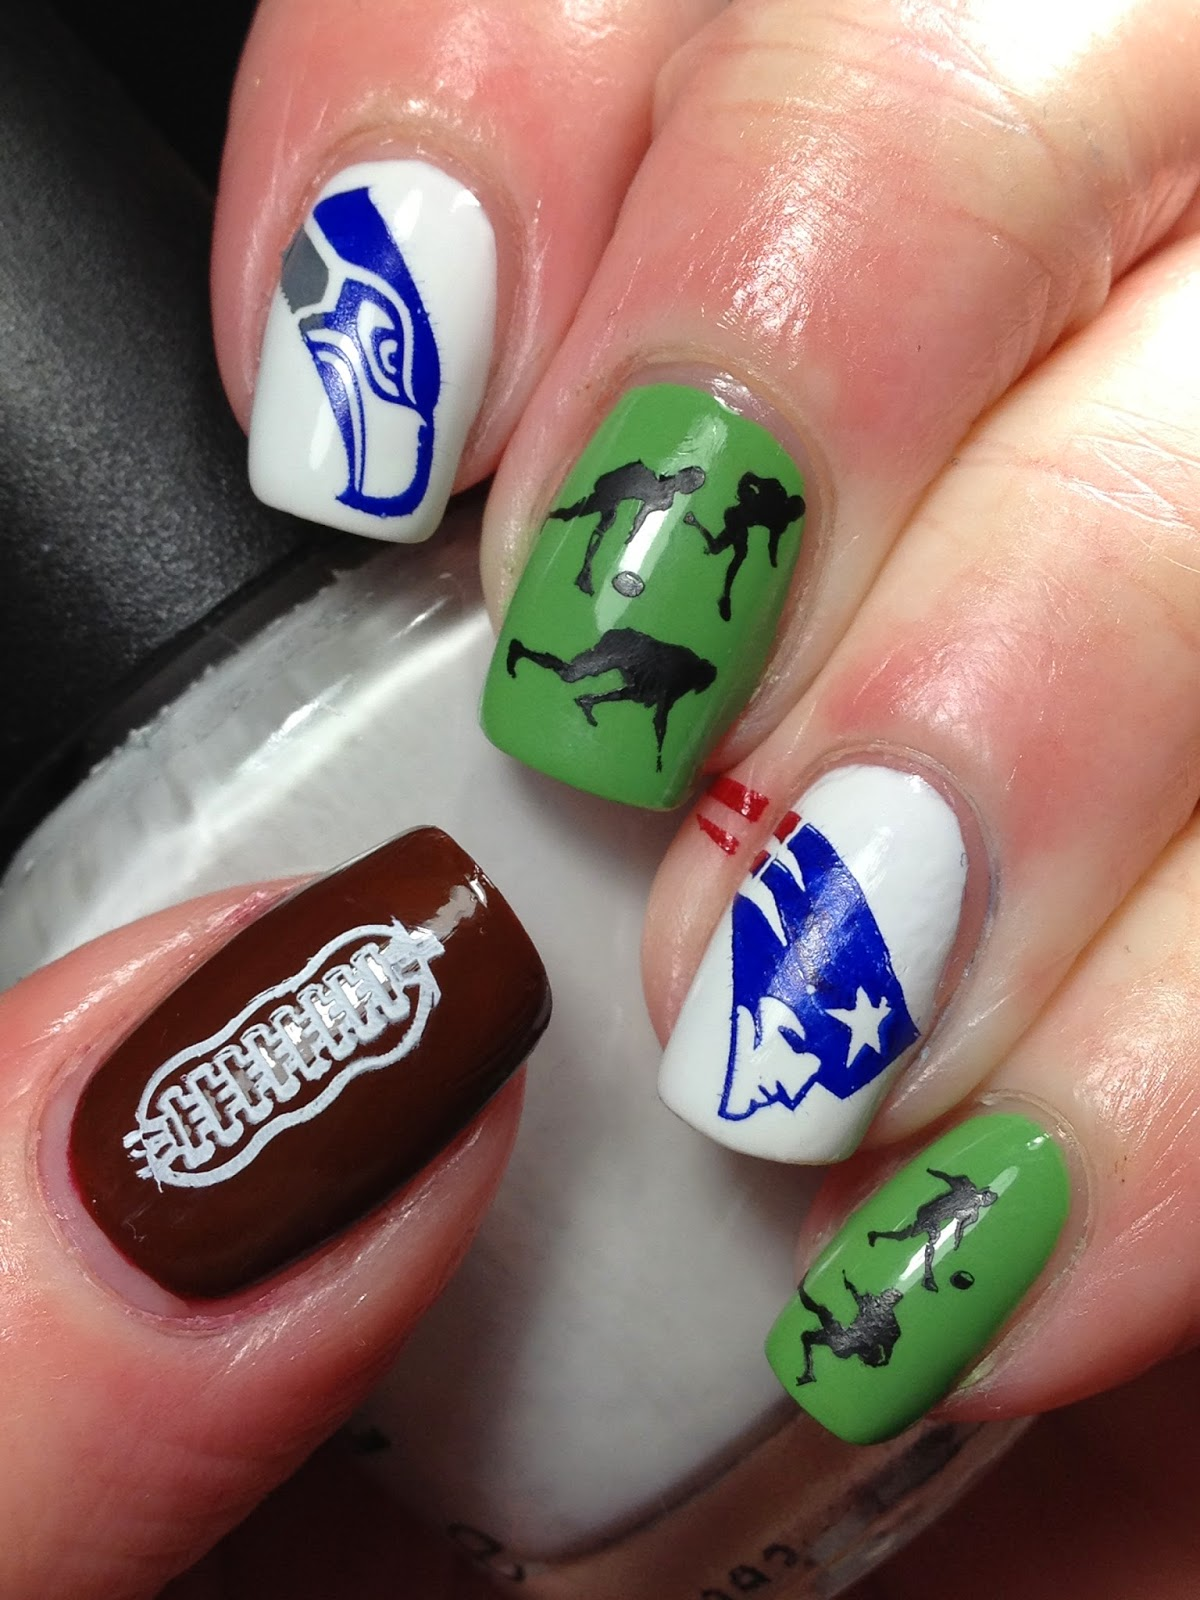 Canadian Nail Fanatic: Super Bowl Nails!